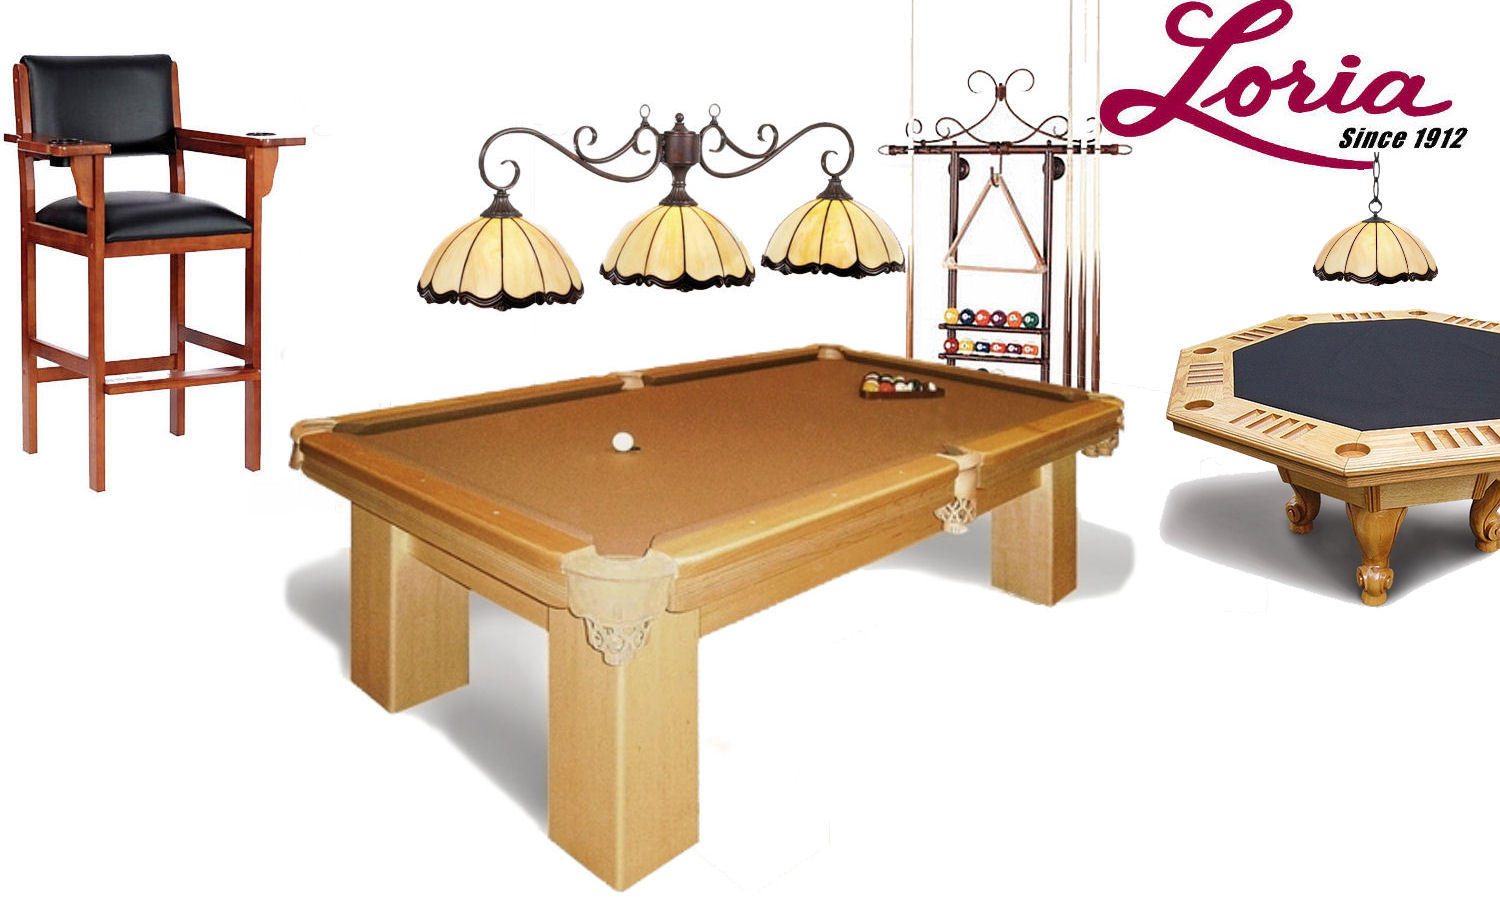 Seville series pool table light fixture loria awards seville series pool table light fixture click image to enlarge click on thumbnail to zoom arubaitofo Images